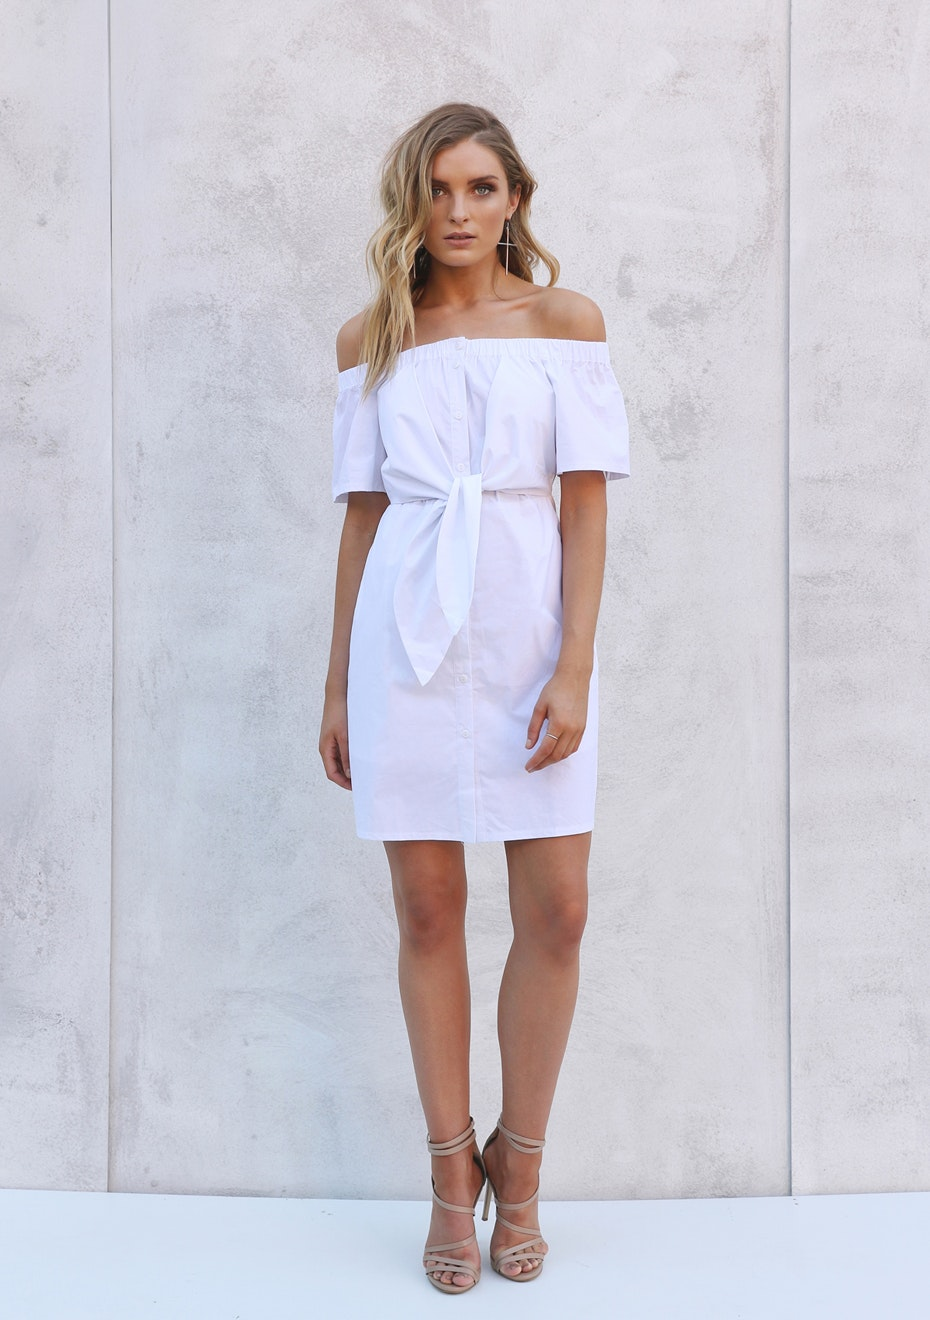 Madison - PIA SHIRT DRESS - WHITE